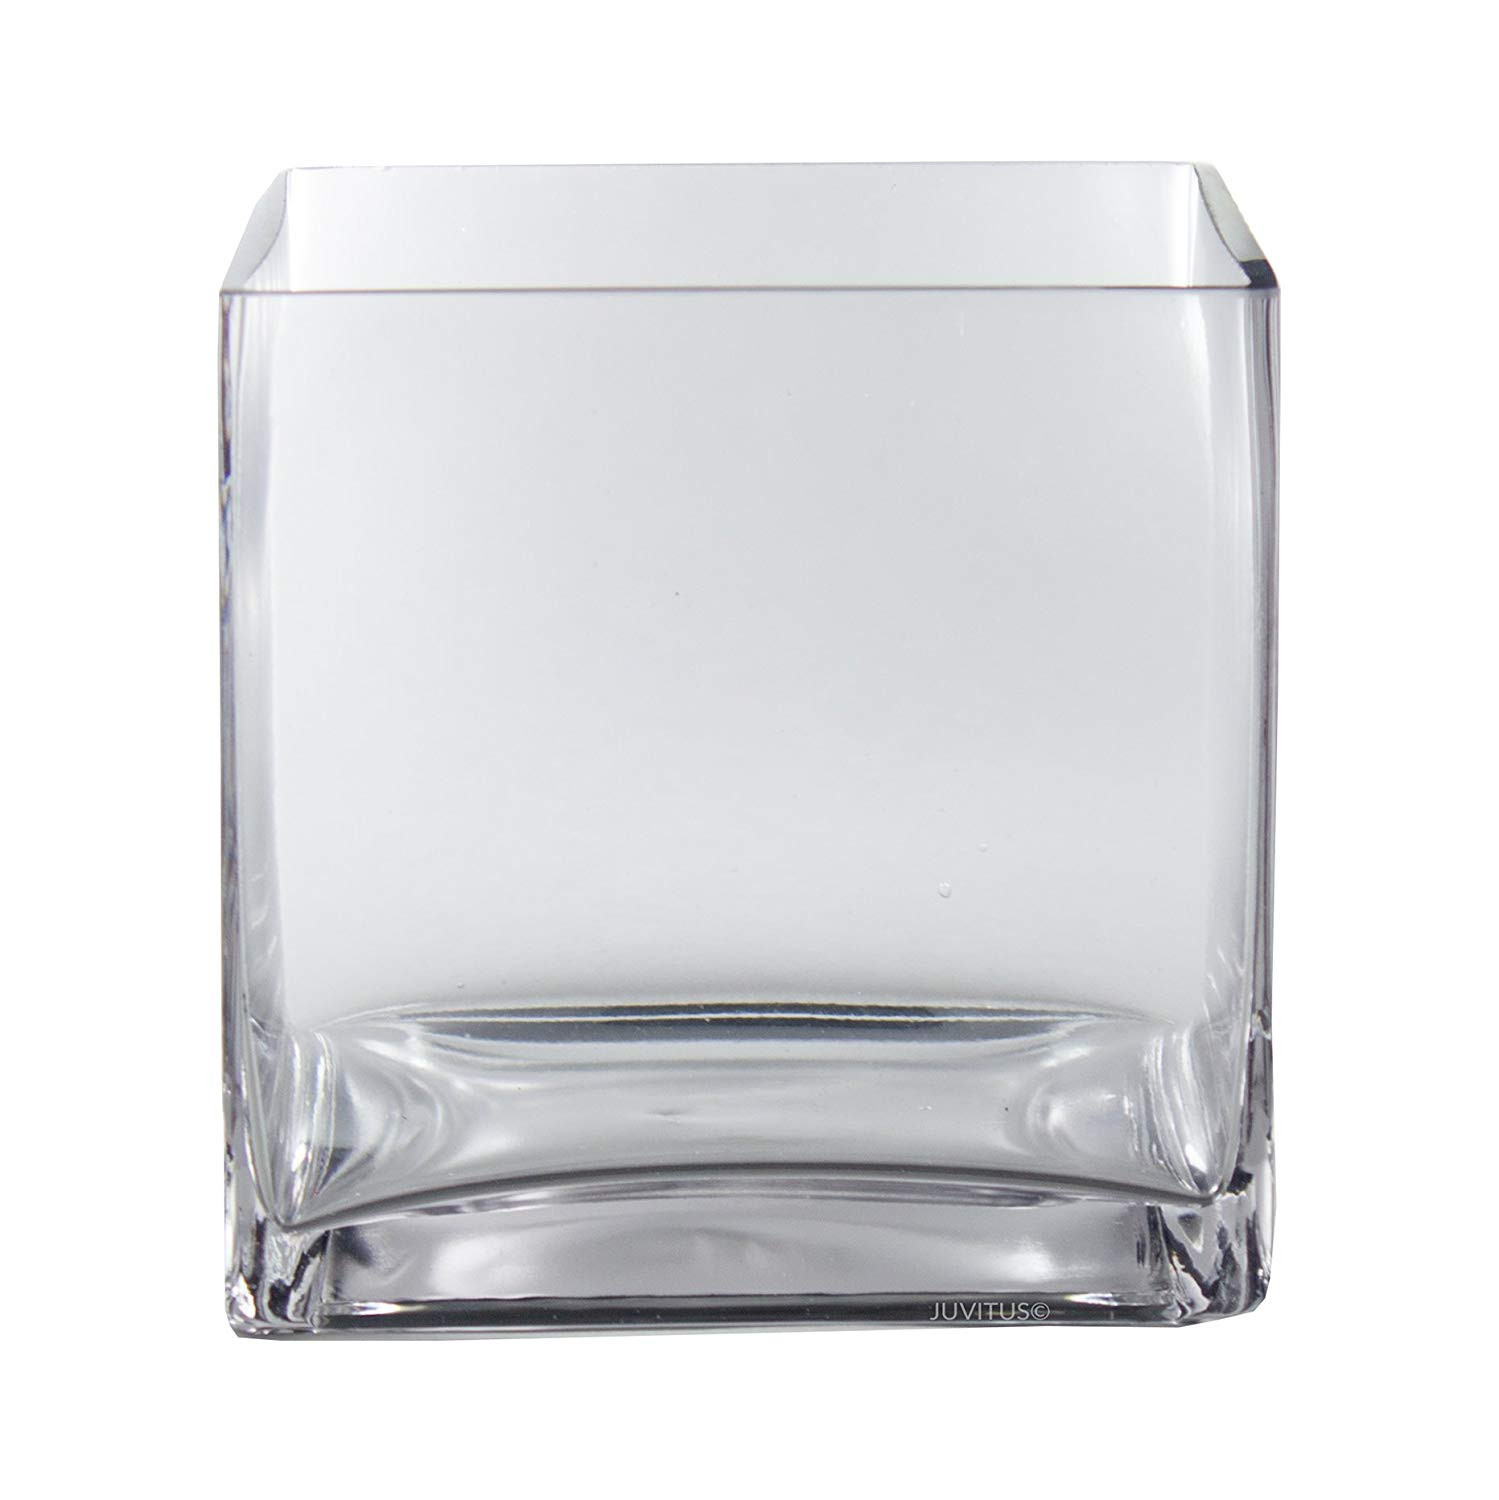 6x6 glass vase of amazon com 6 x 6 x 6 square clear glass cube vase or candle with amazon com 6 x 6 x 6 square clear glass cube vase or candle holder home kitchen